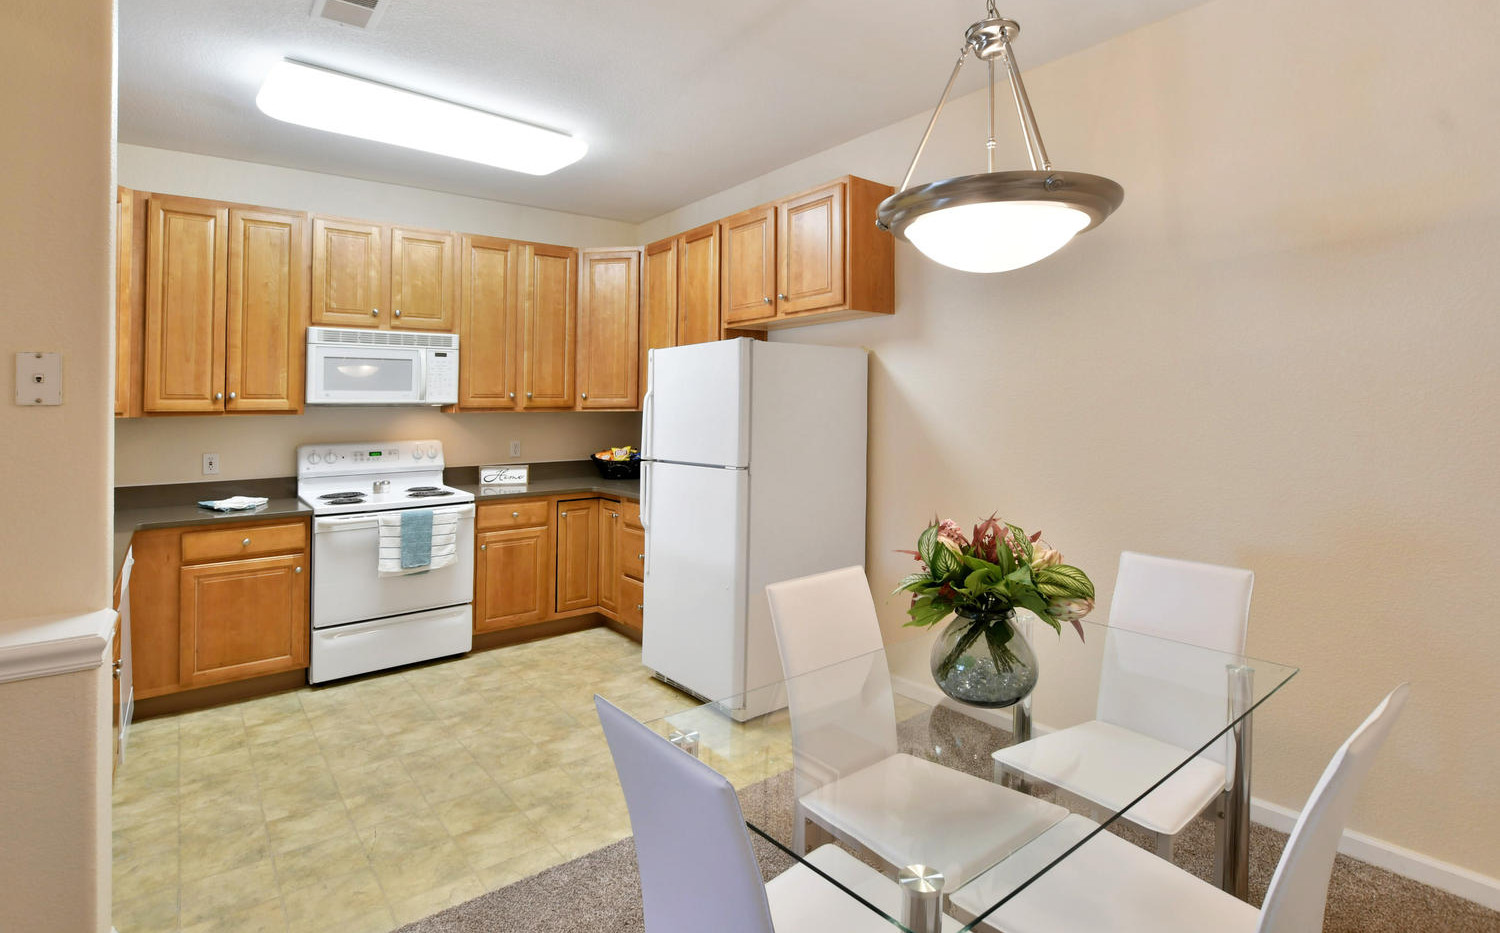 One bedroom kitchen and dining area